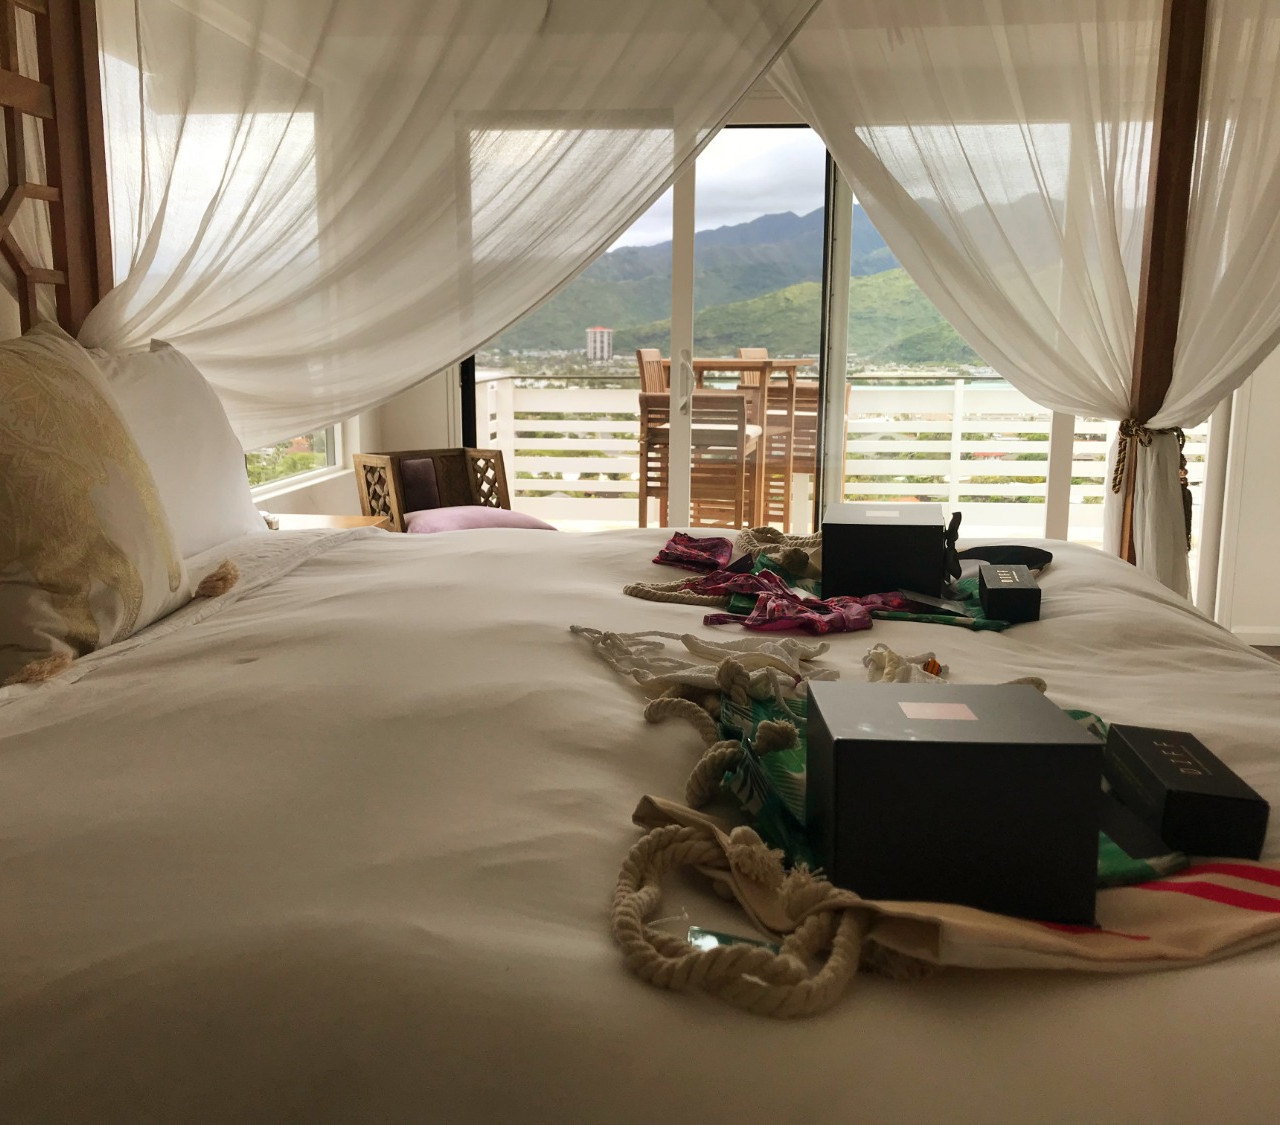 Rooms with a view - and gifts!